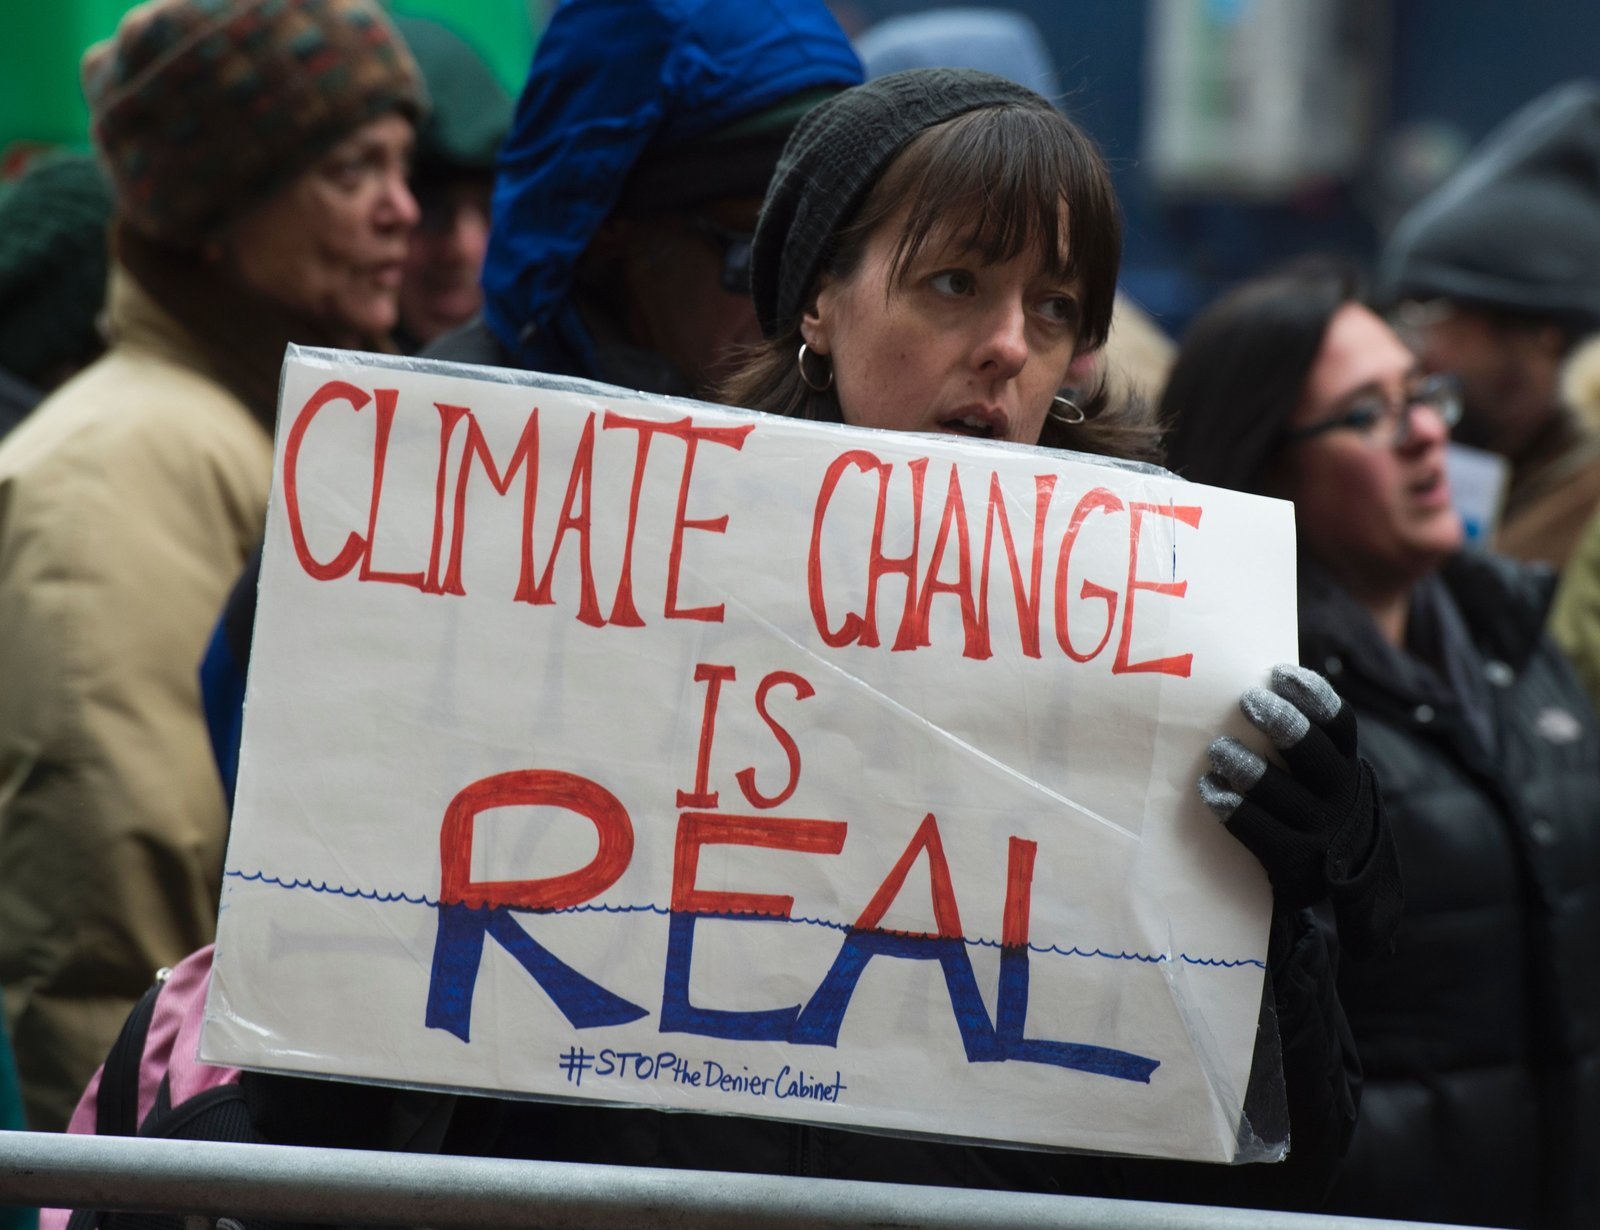 Protesters urge Donald Trump to take climate change seriously